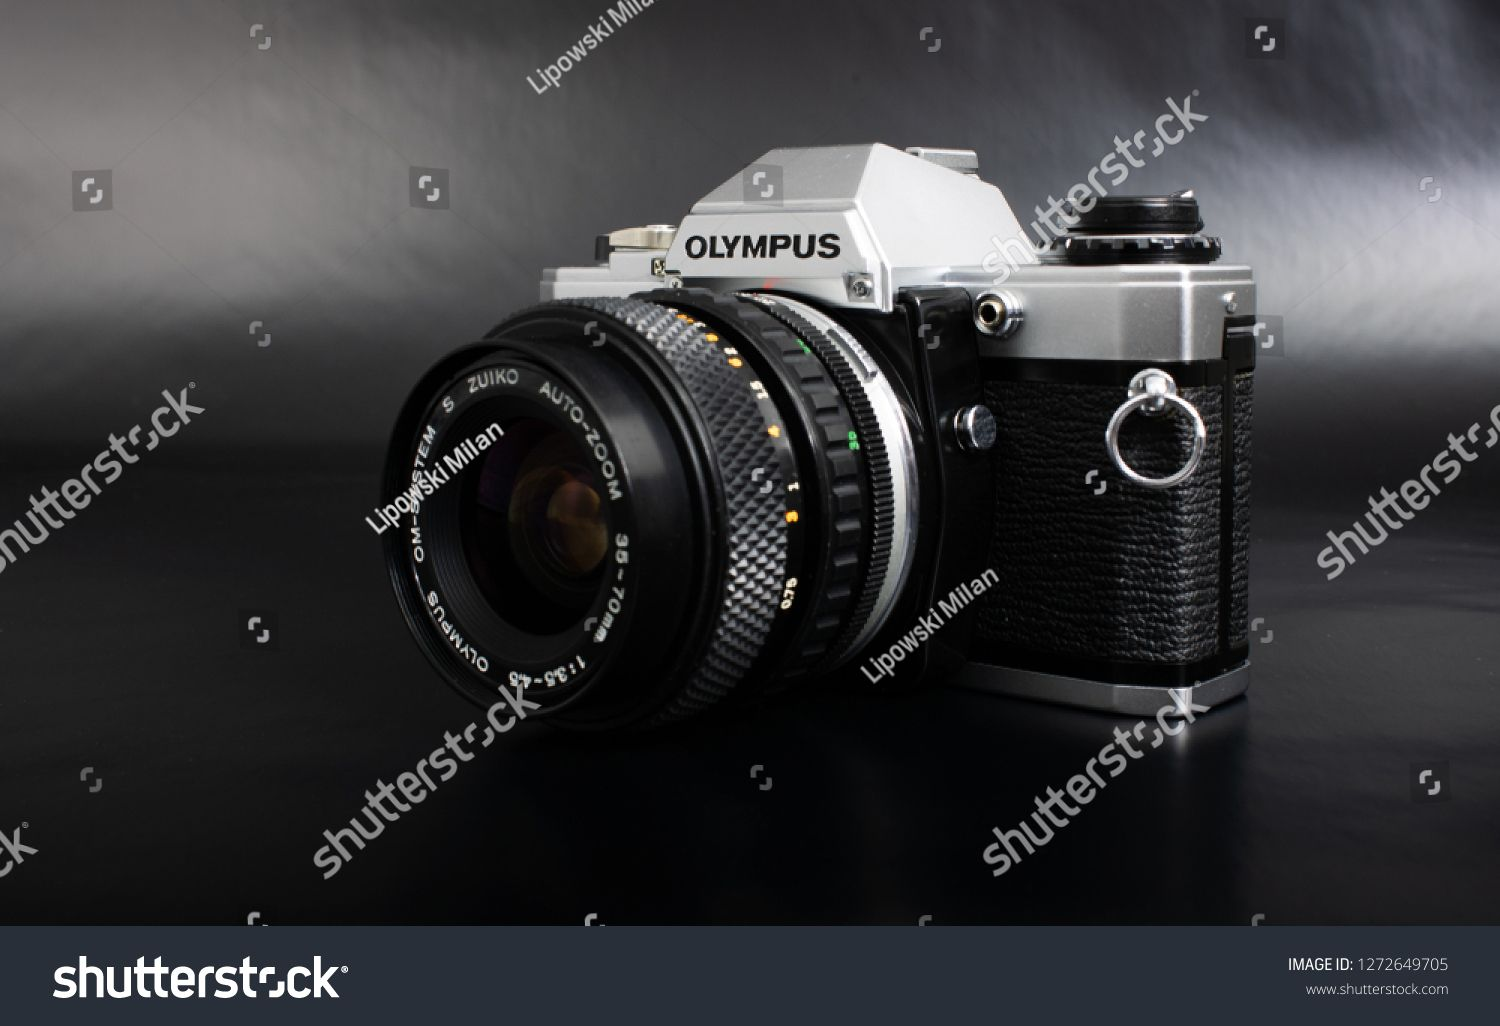 Prague, CZECH REPUBLIC - JANUARY 02, 2019: Olympus OM-10 is a 35mm film camera, launched by Olympus Corporation  #Ad , #AD, #Olympus#OM#CZECH#Prague